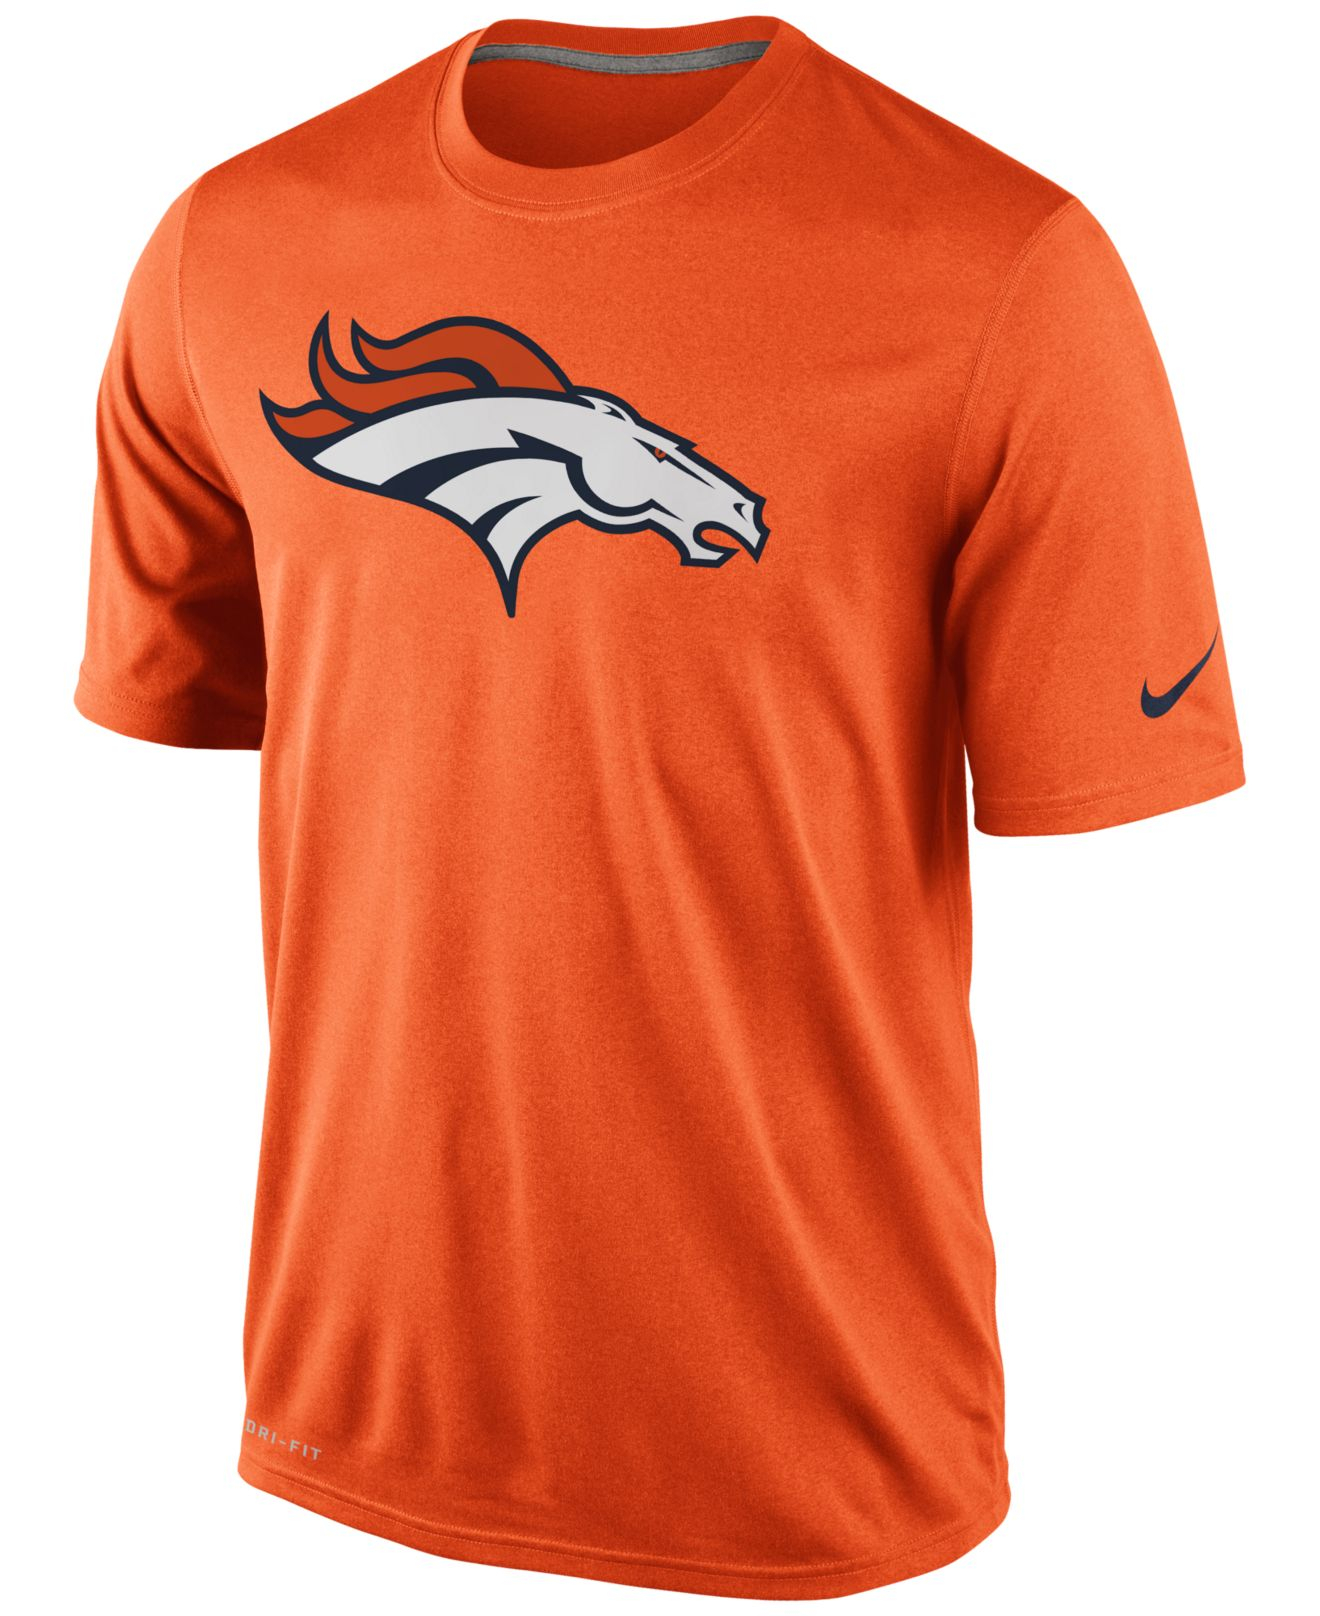 Nike men 39 s short sleeve denver broncos dri fit t shirt in for Dri fit dress shirts